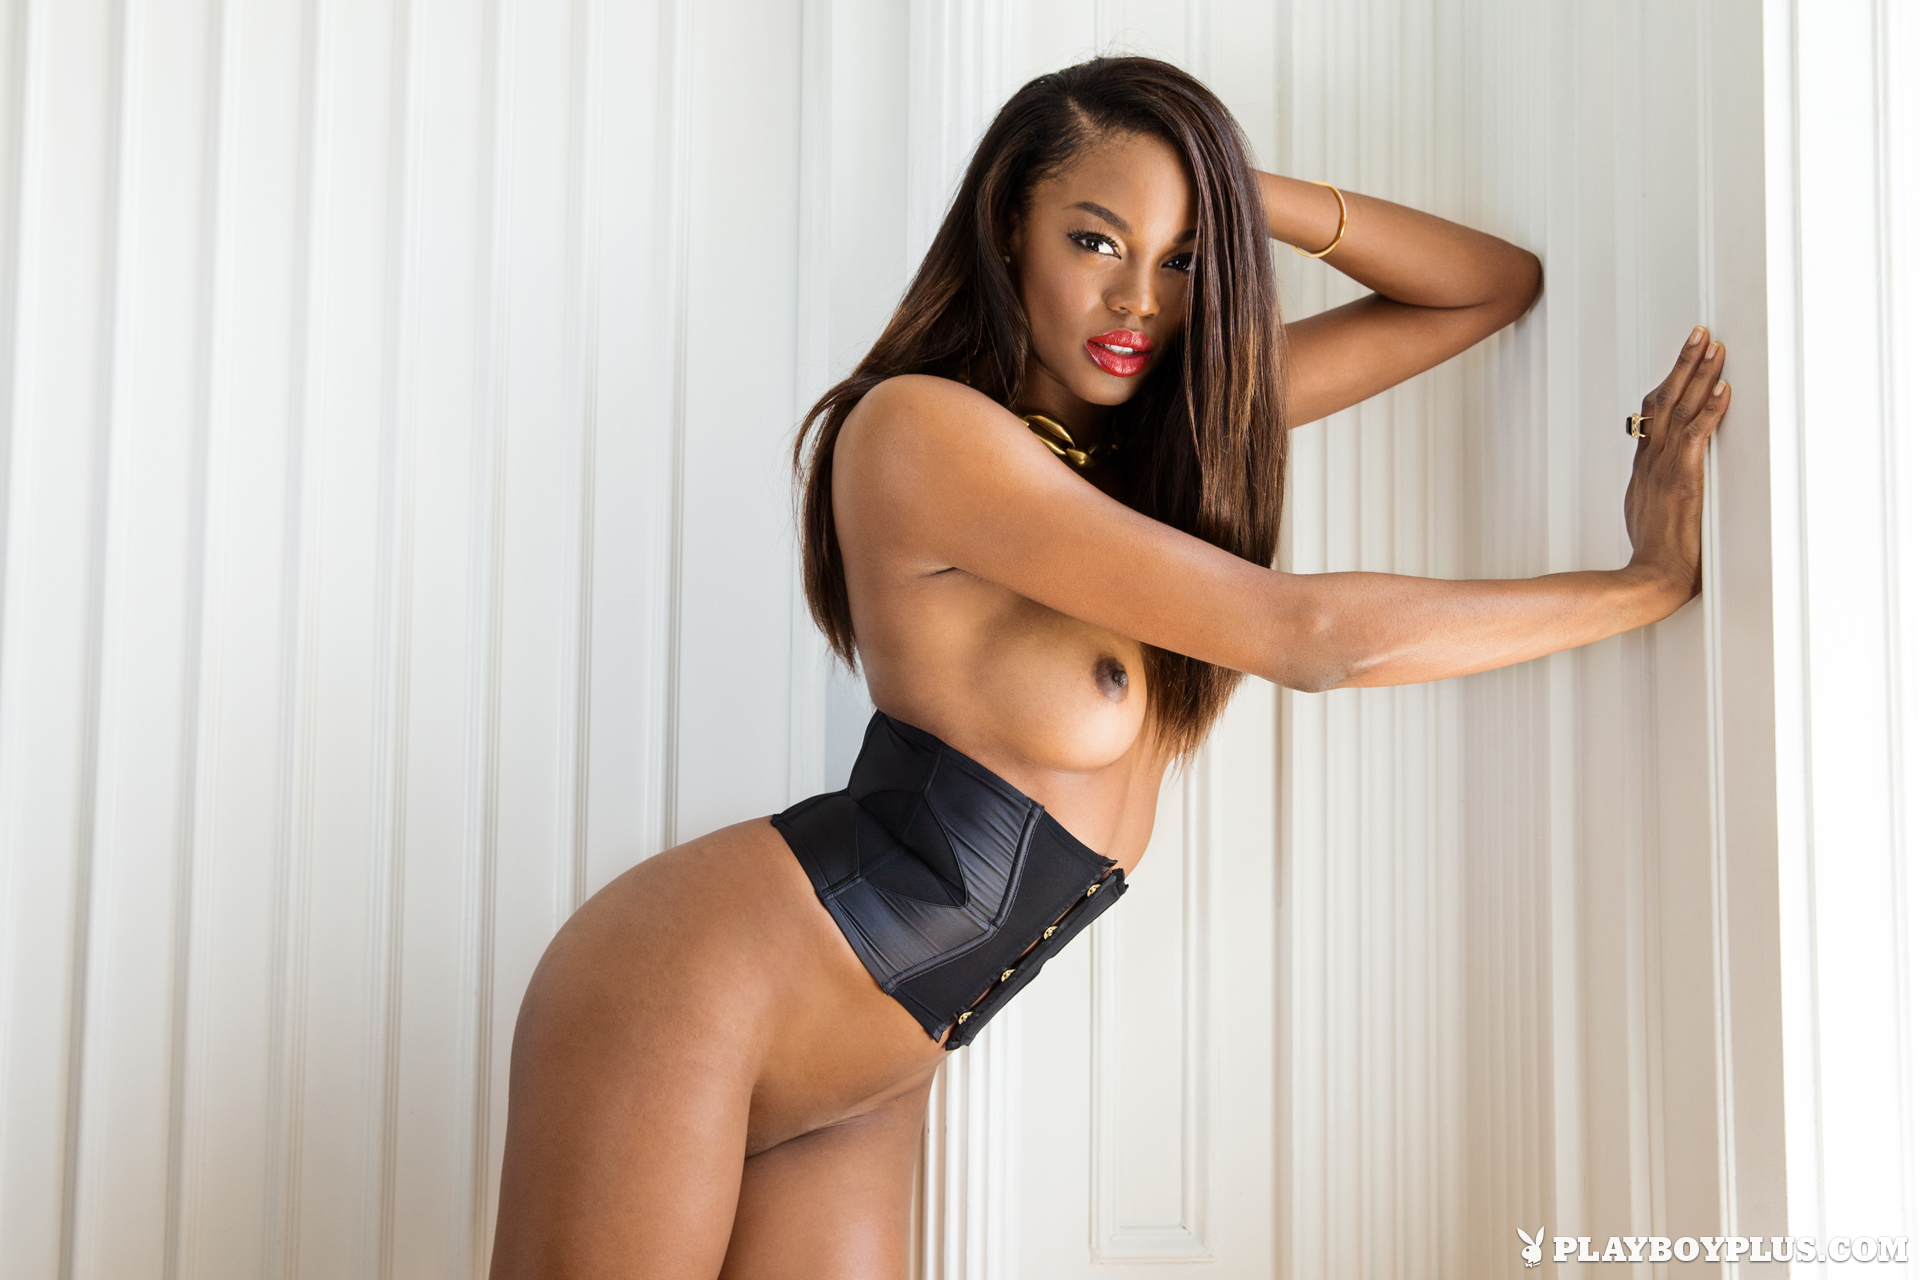 eugena washington in all that glitters   centerfolds blog